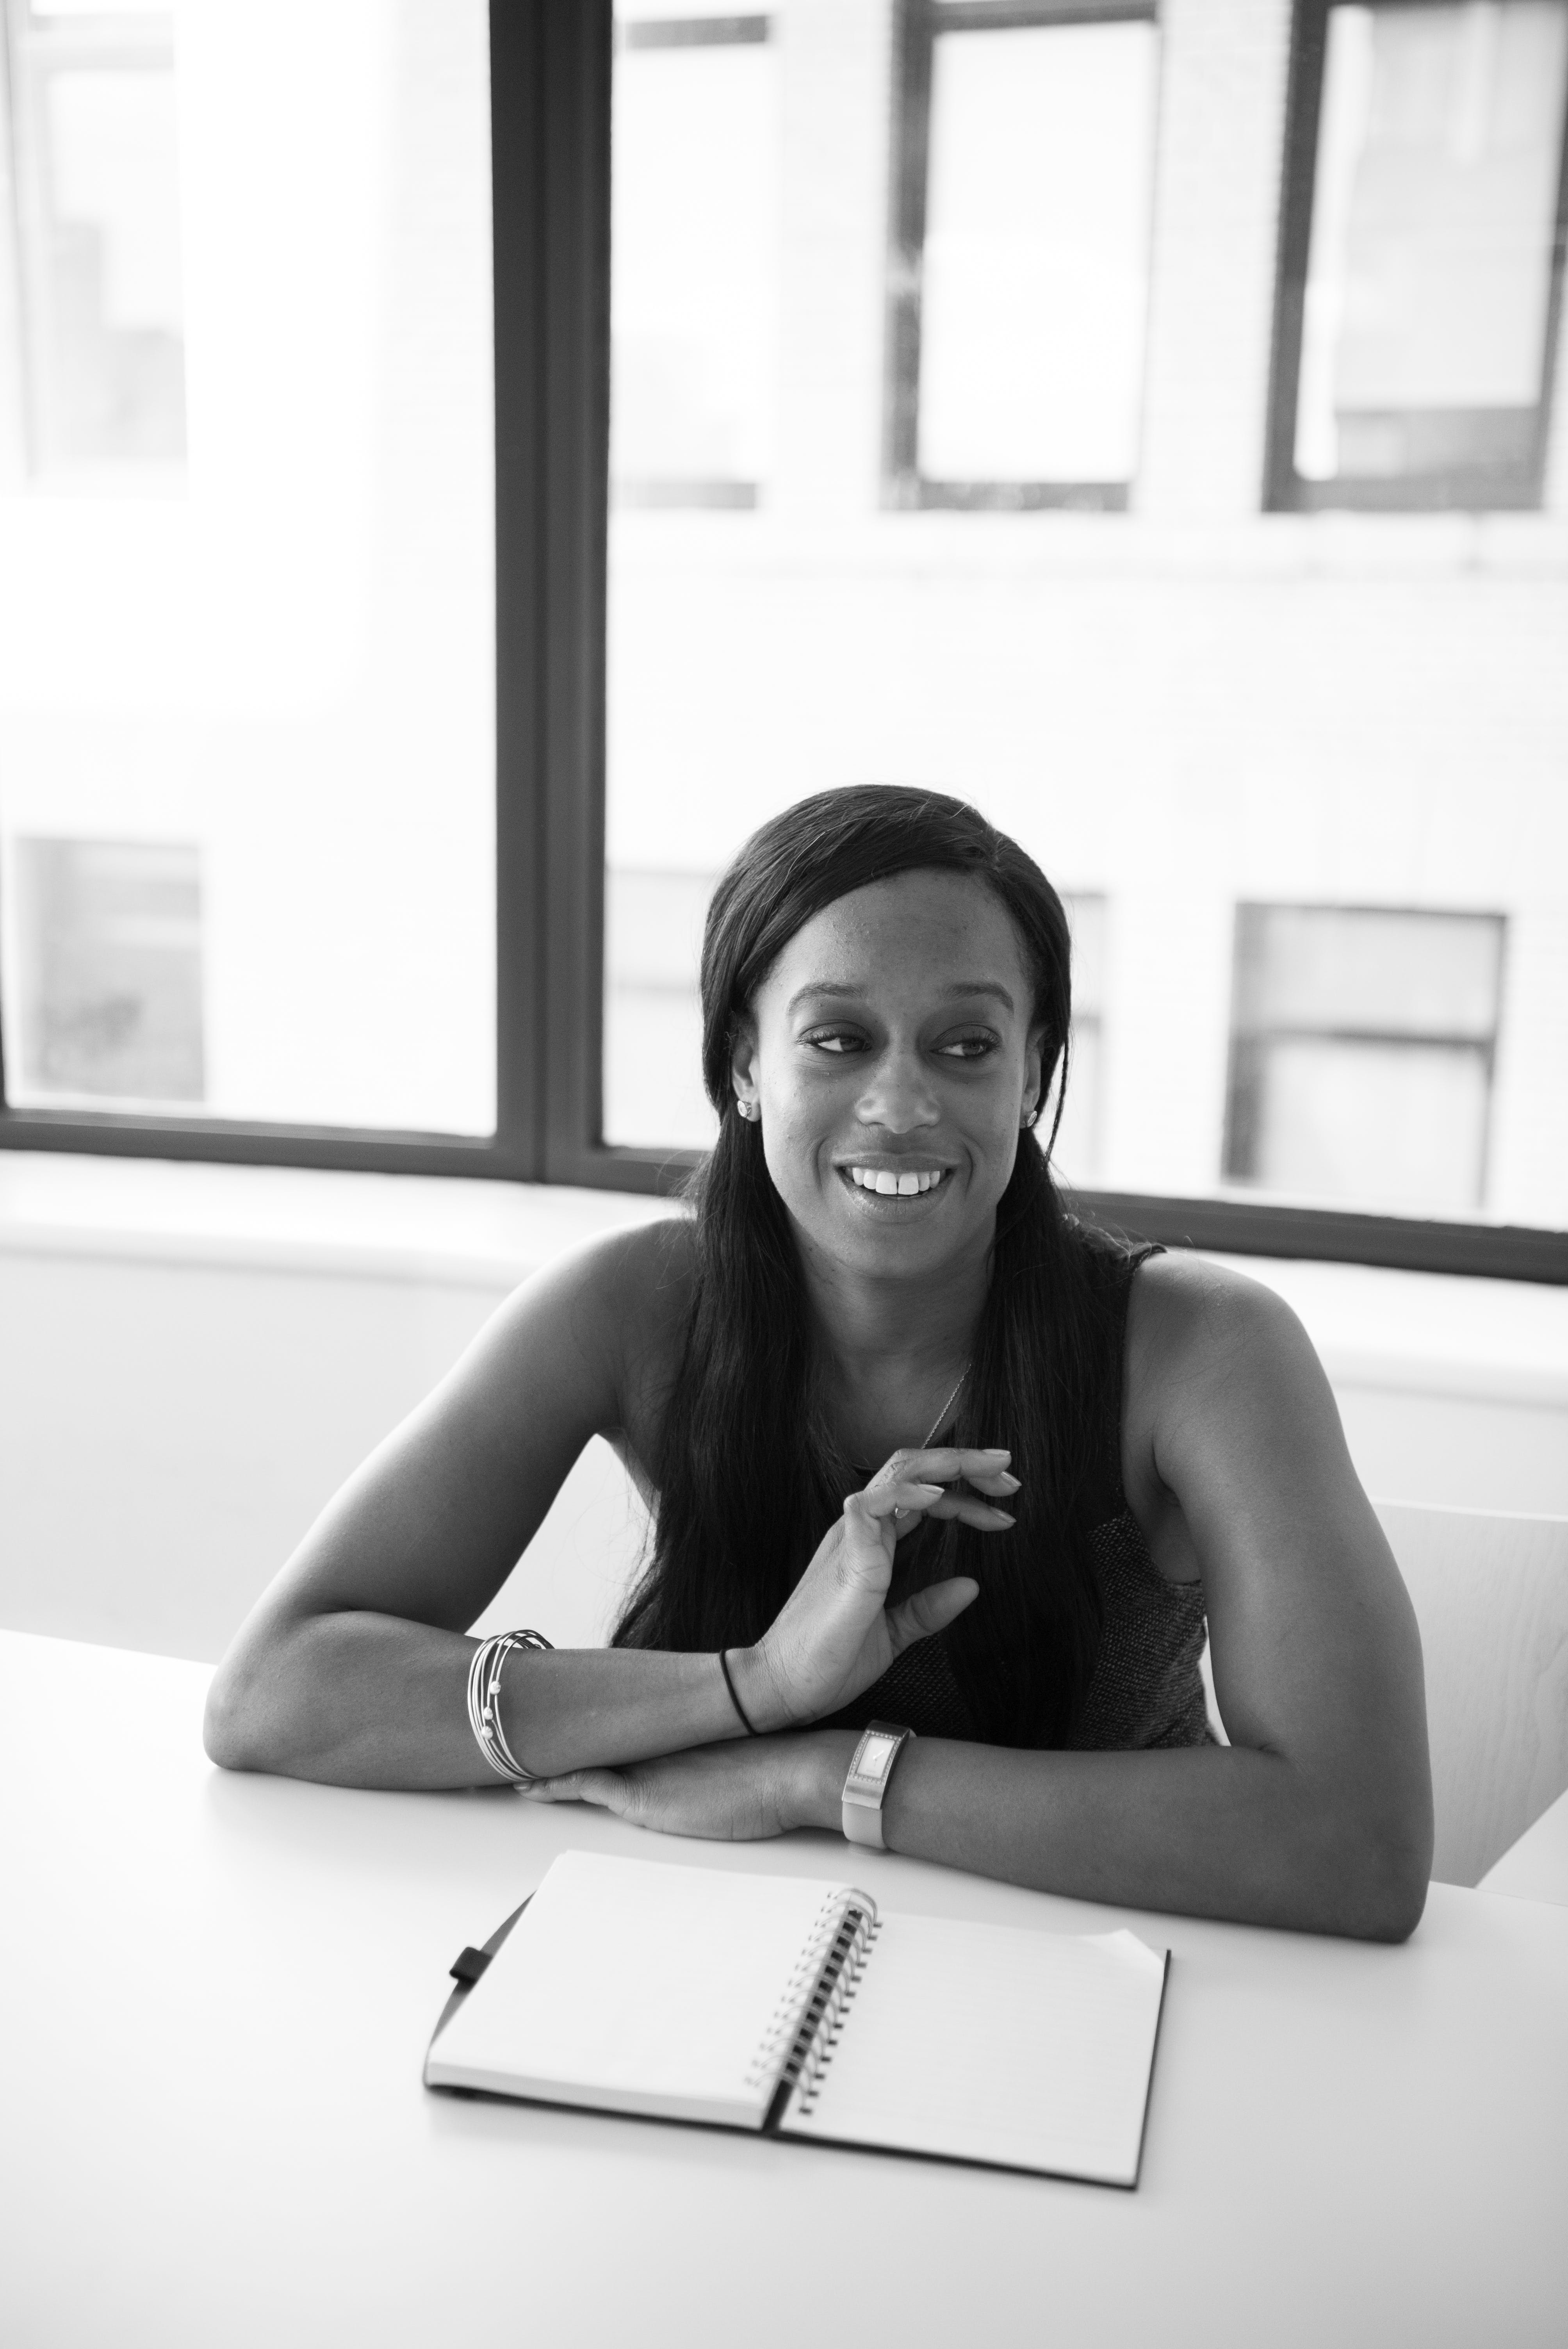 Grayscale Photography of Woman in Sleeveless Top Sits Near Table